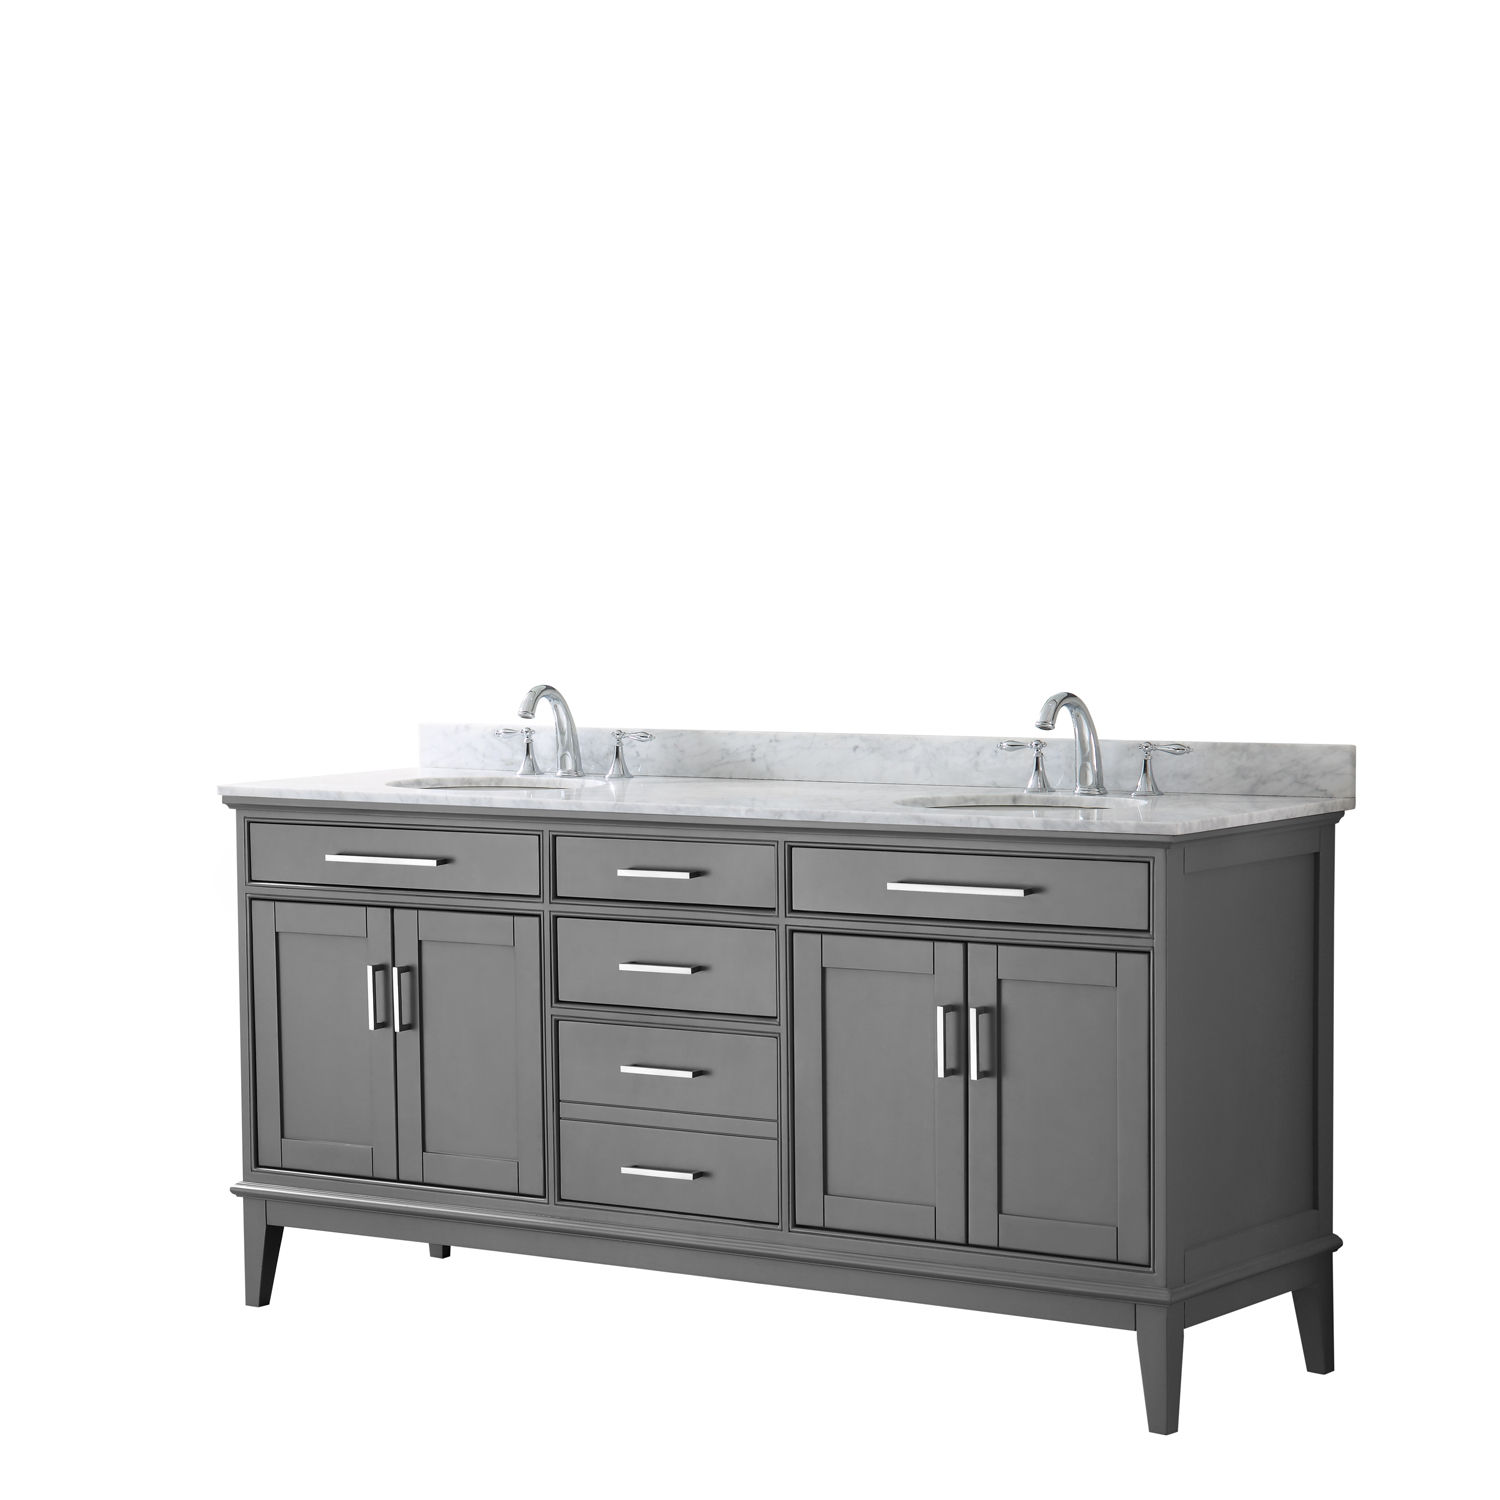 """Contemporary 72"""" Double Bathroom Vanity in Dark Gray, White Carrara Marble Countertop with Undermount Sinks, and Mirror Options"""